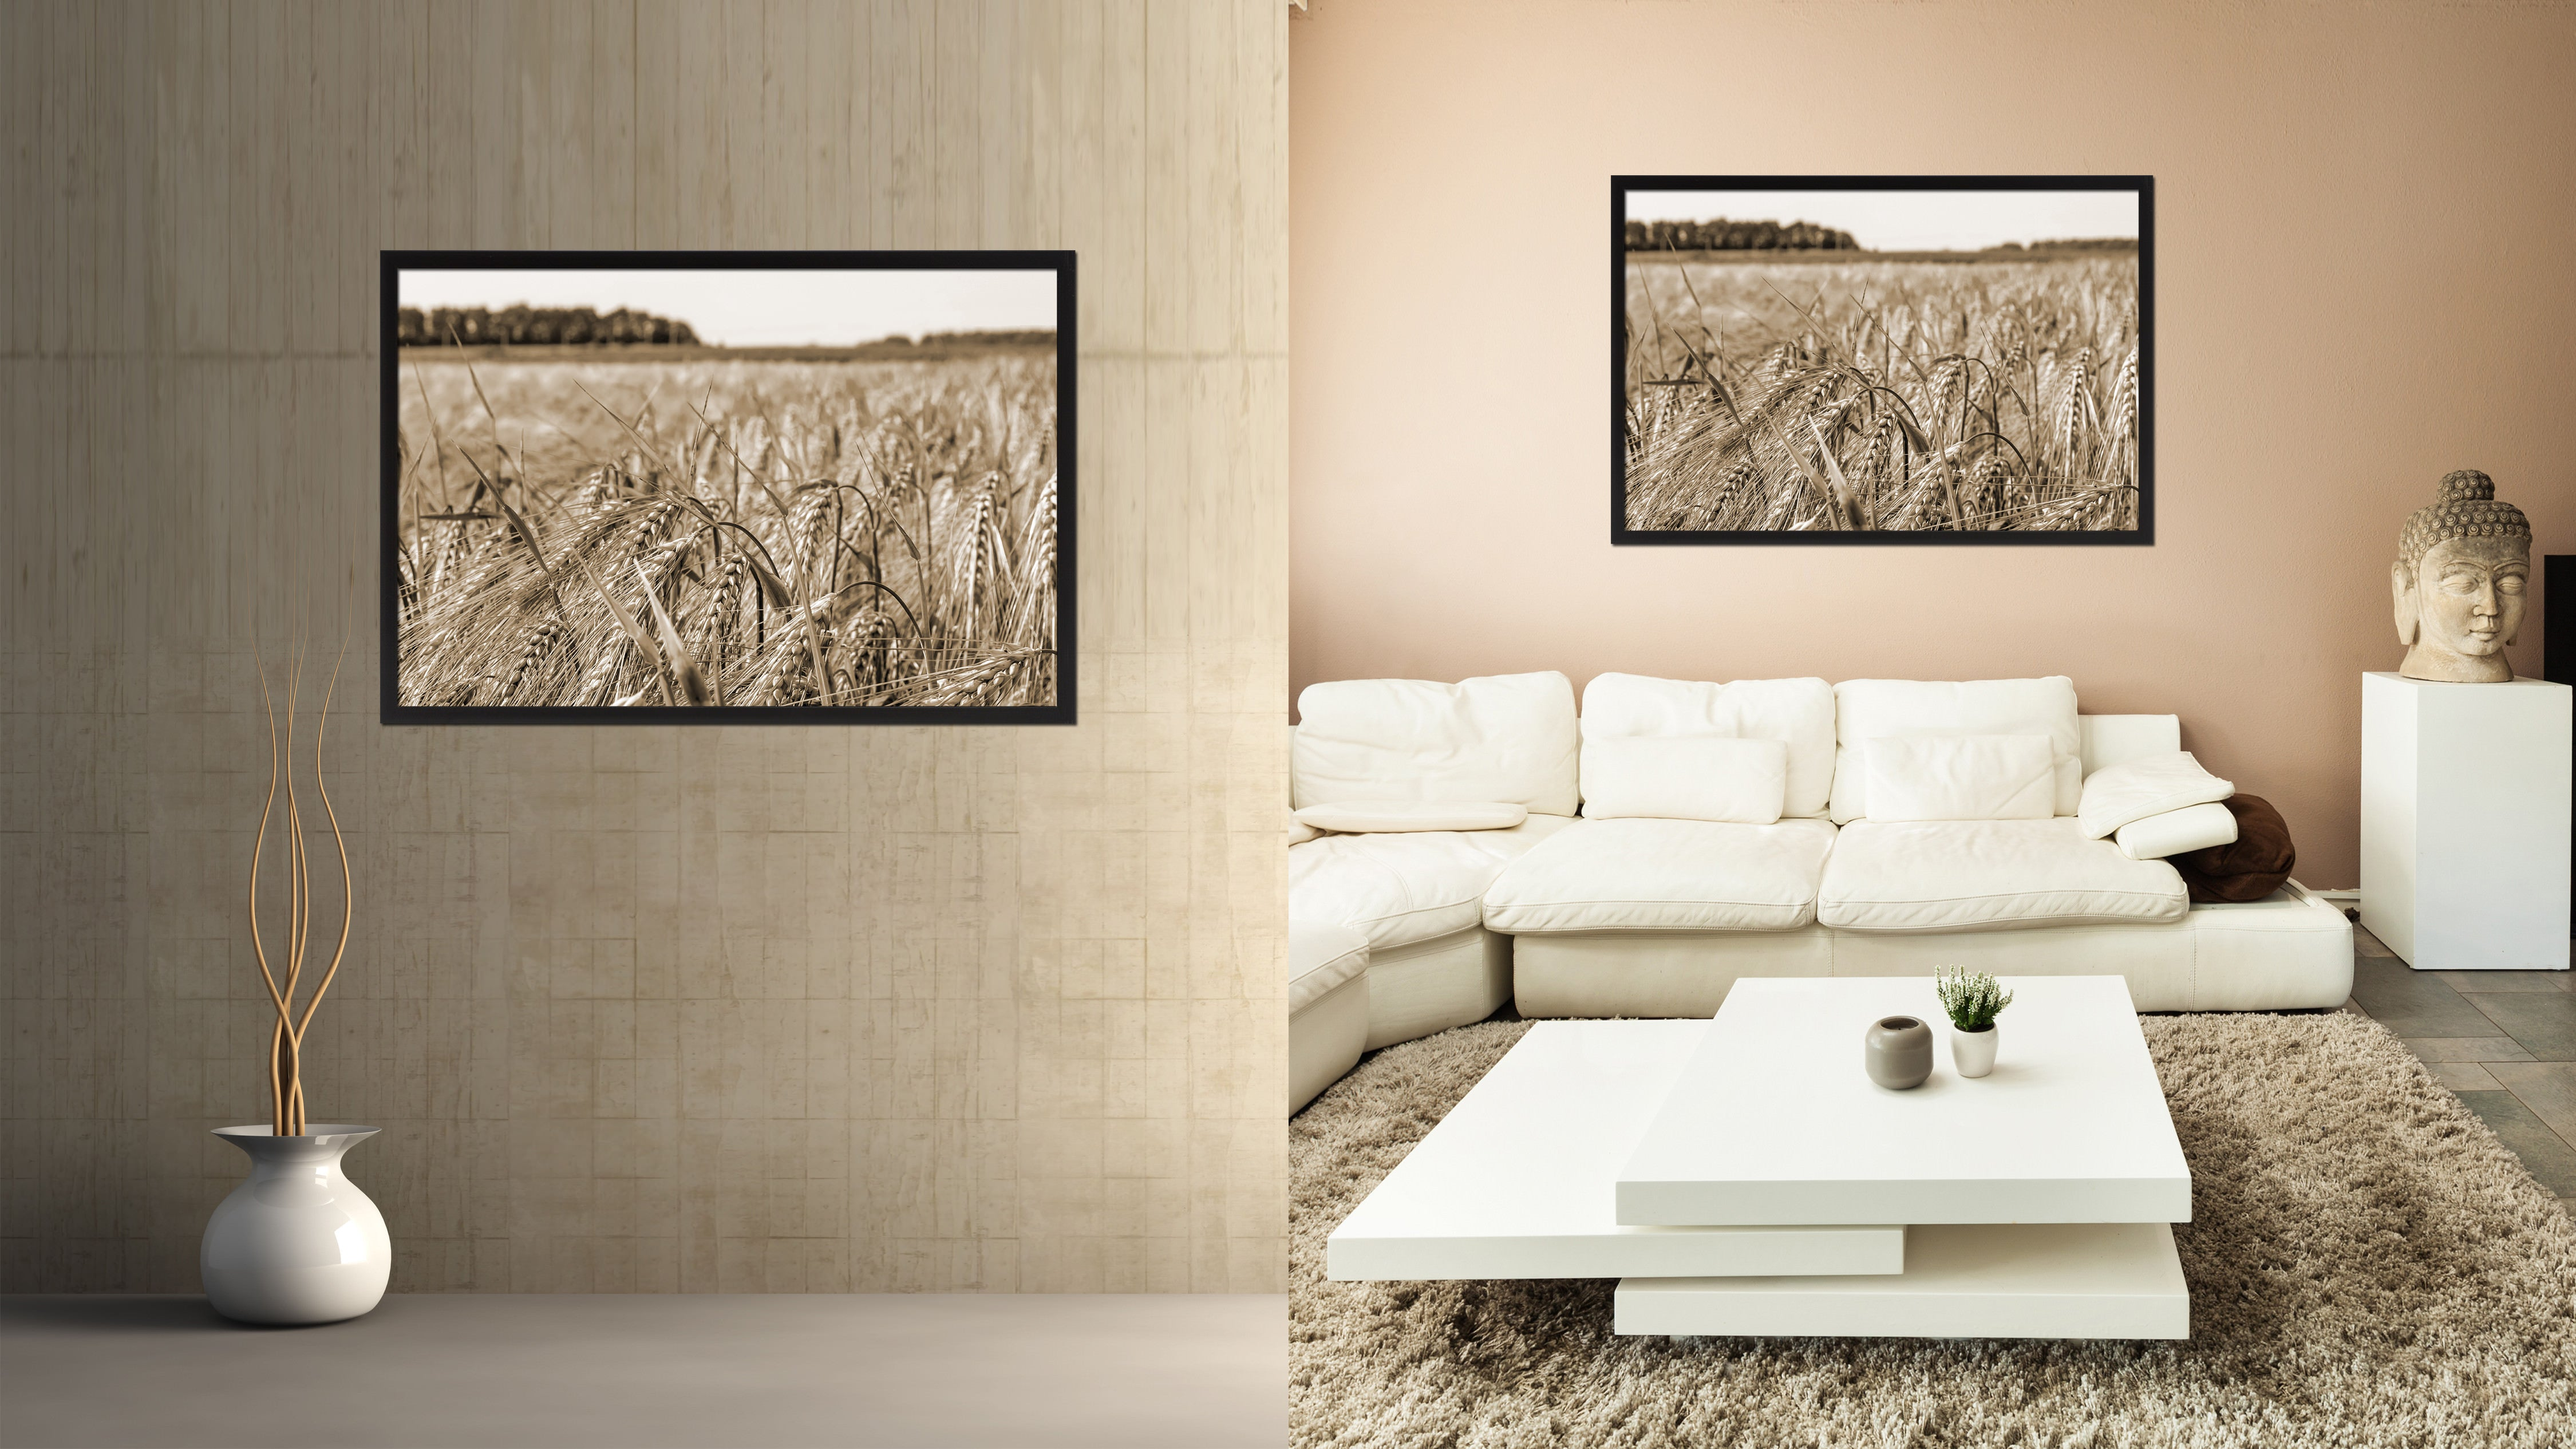 Barley paddy Sepia Landscape decor, National Park, Sightseeing, Attractions, Black Frame